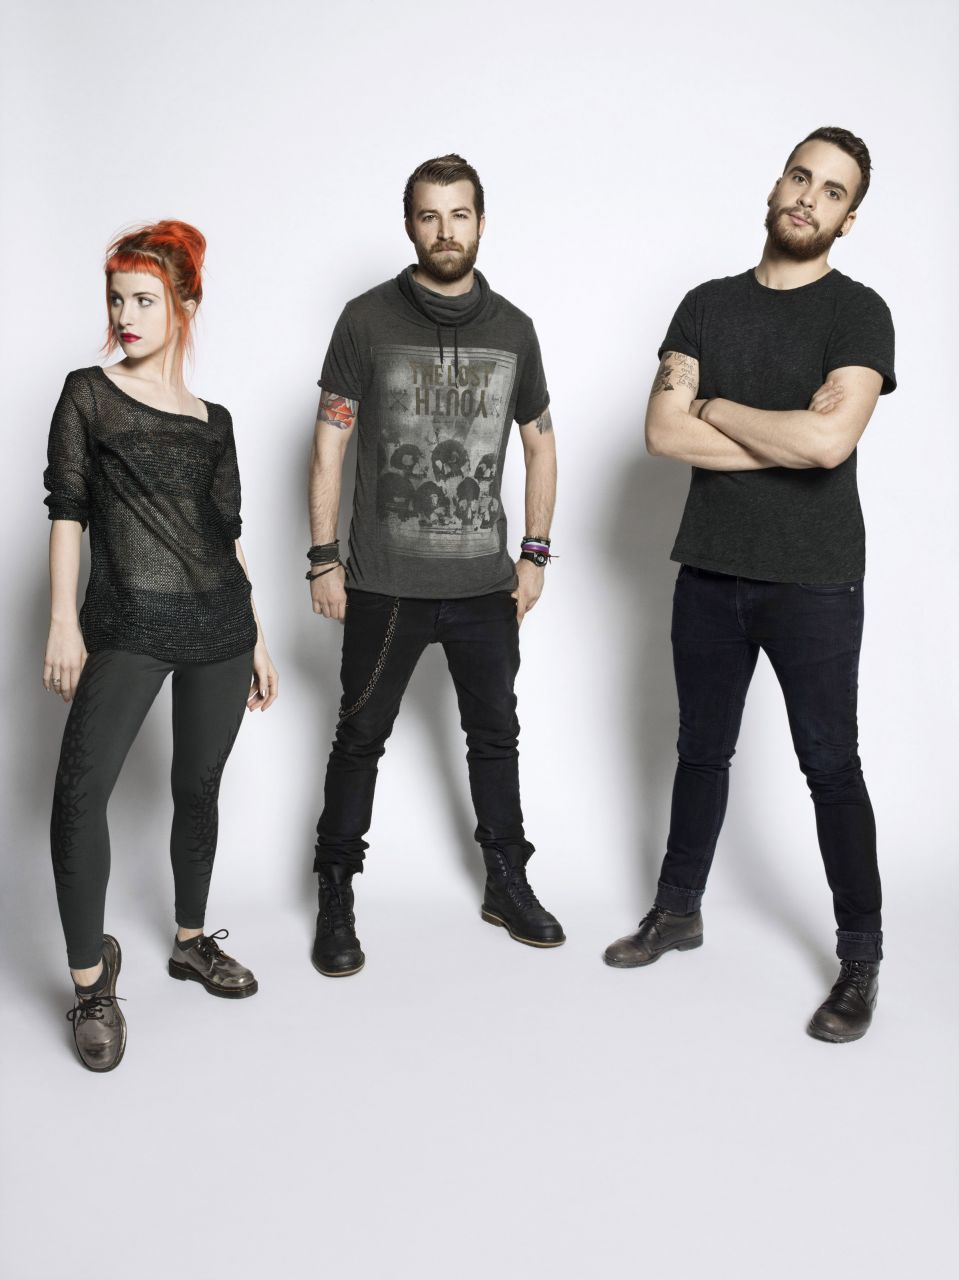 Interview: Hayley Williams from Paramore talks new album and tour